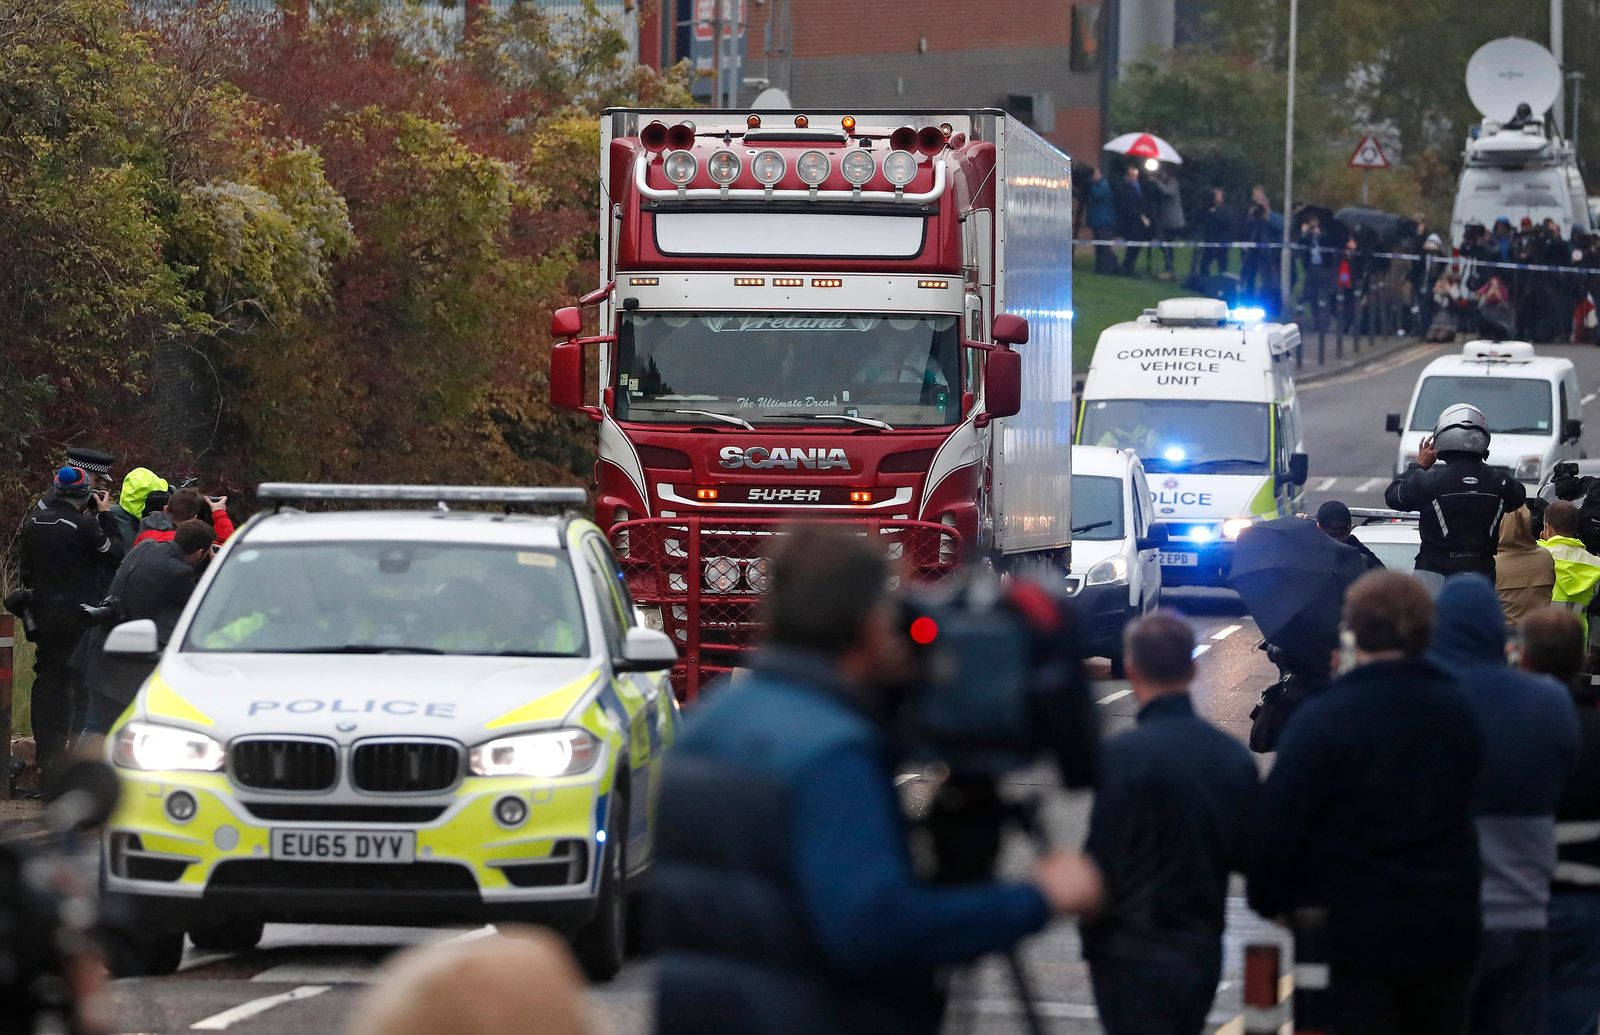 Police escort the truck, that was found to contain a large number of dead bodies, as they move it from an industrial estate in Thurrock, south England, Wednesday Oct. 23, 2019.(AP Photo/Alastair Grant)